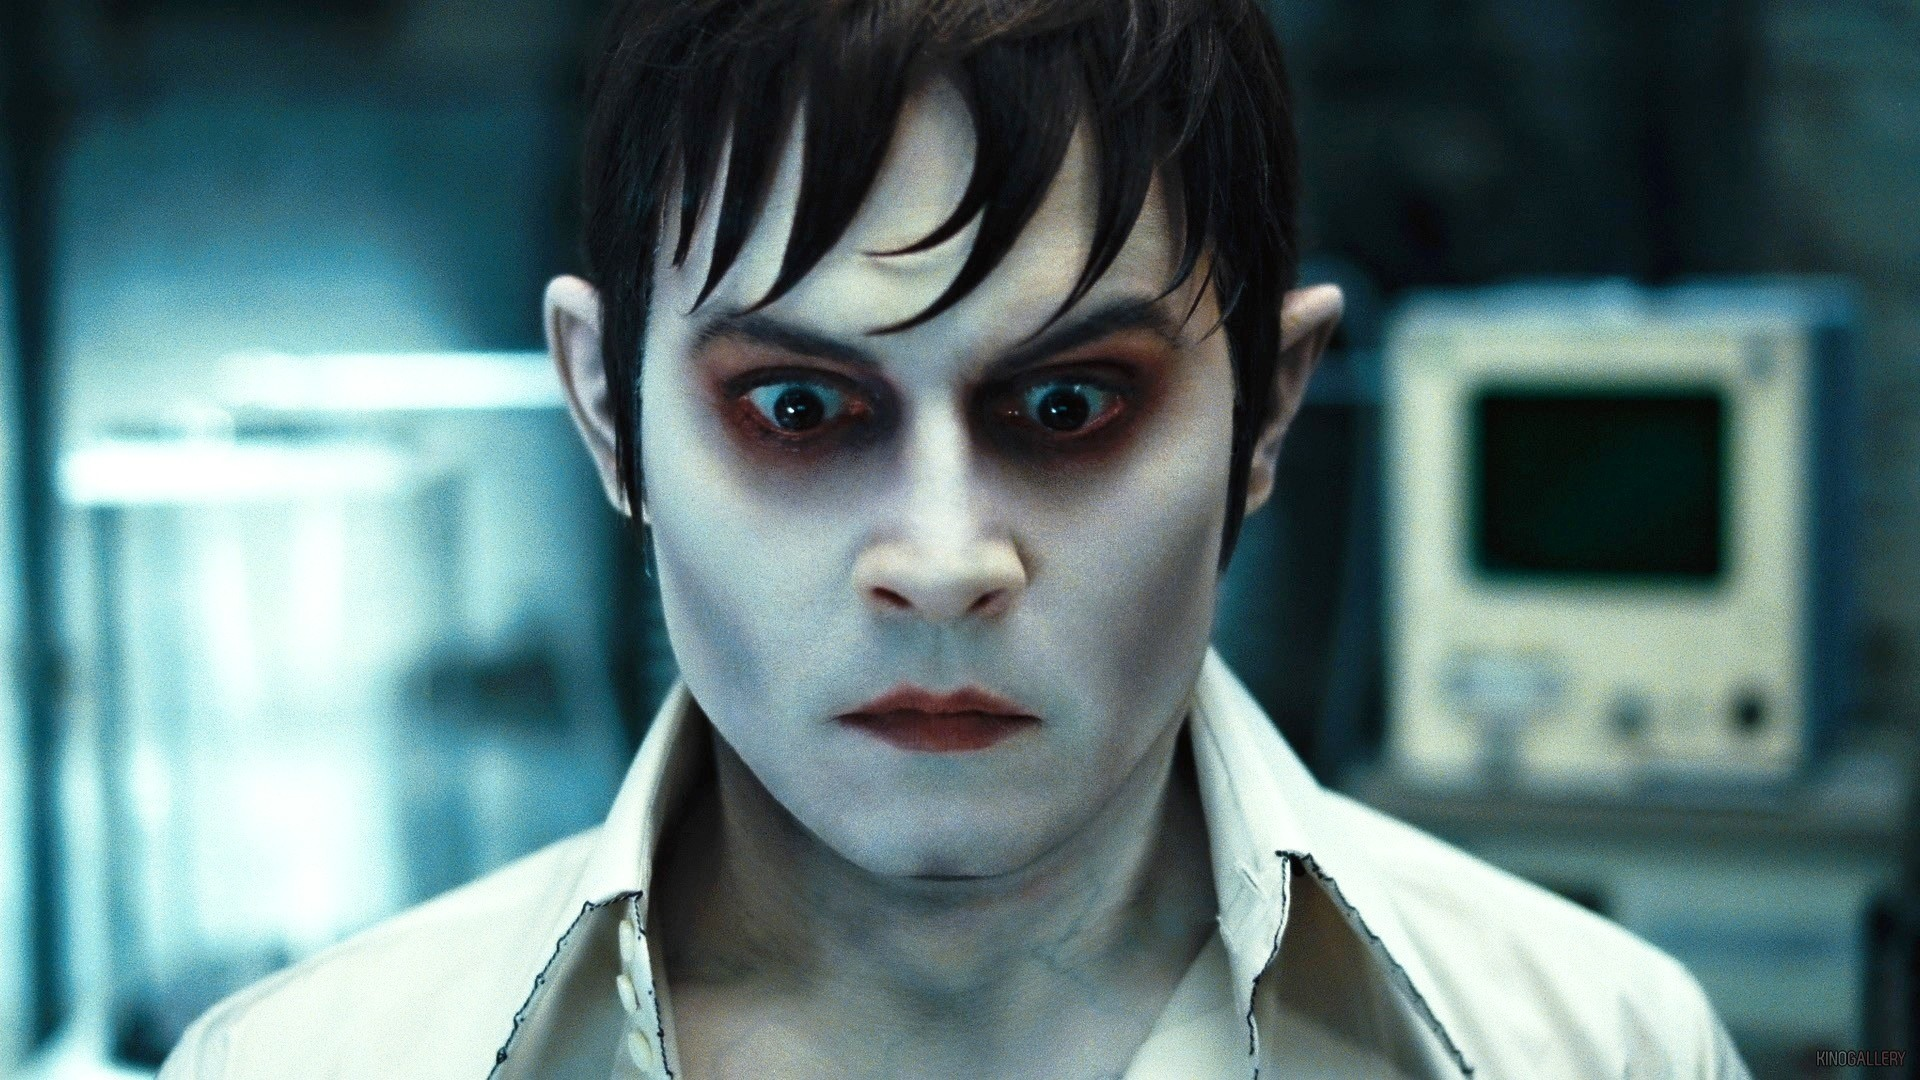 Johnny Depp Hd Wallpaper In Dark Shadows Movie 1920x1080 Wallpaper